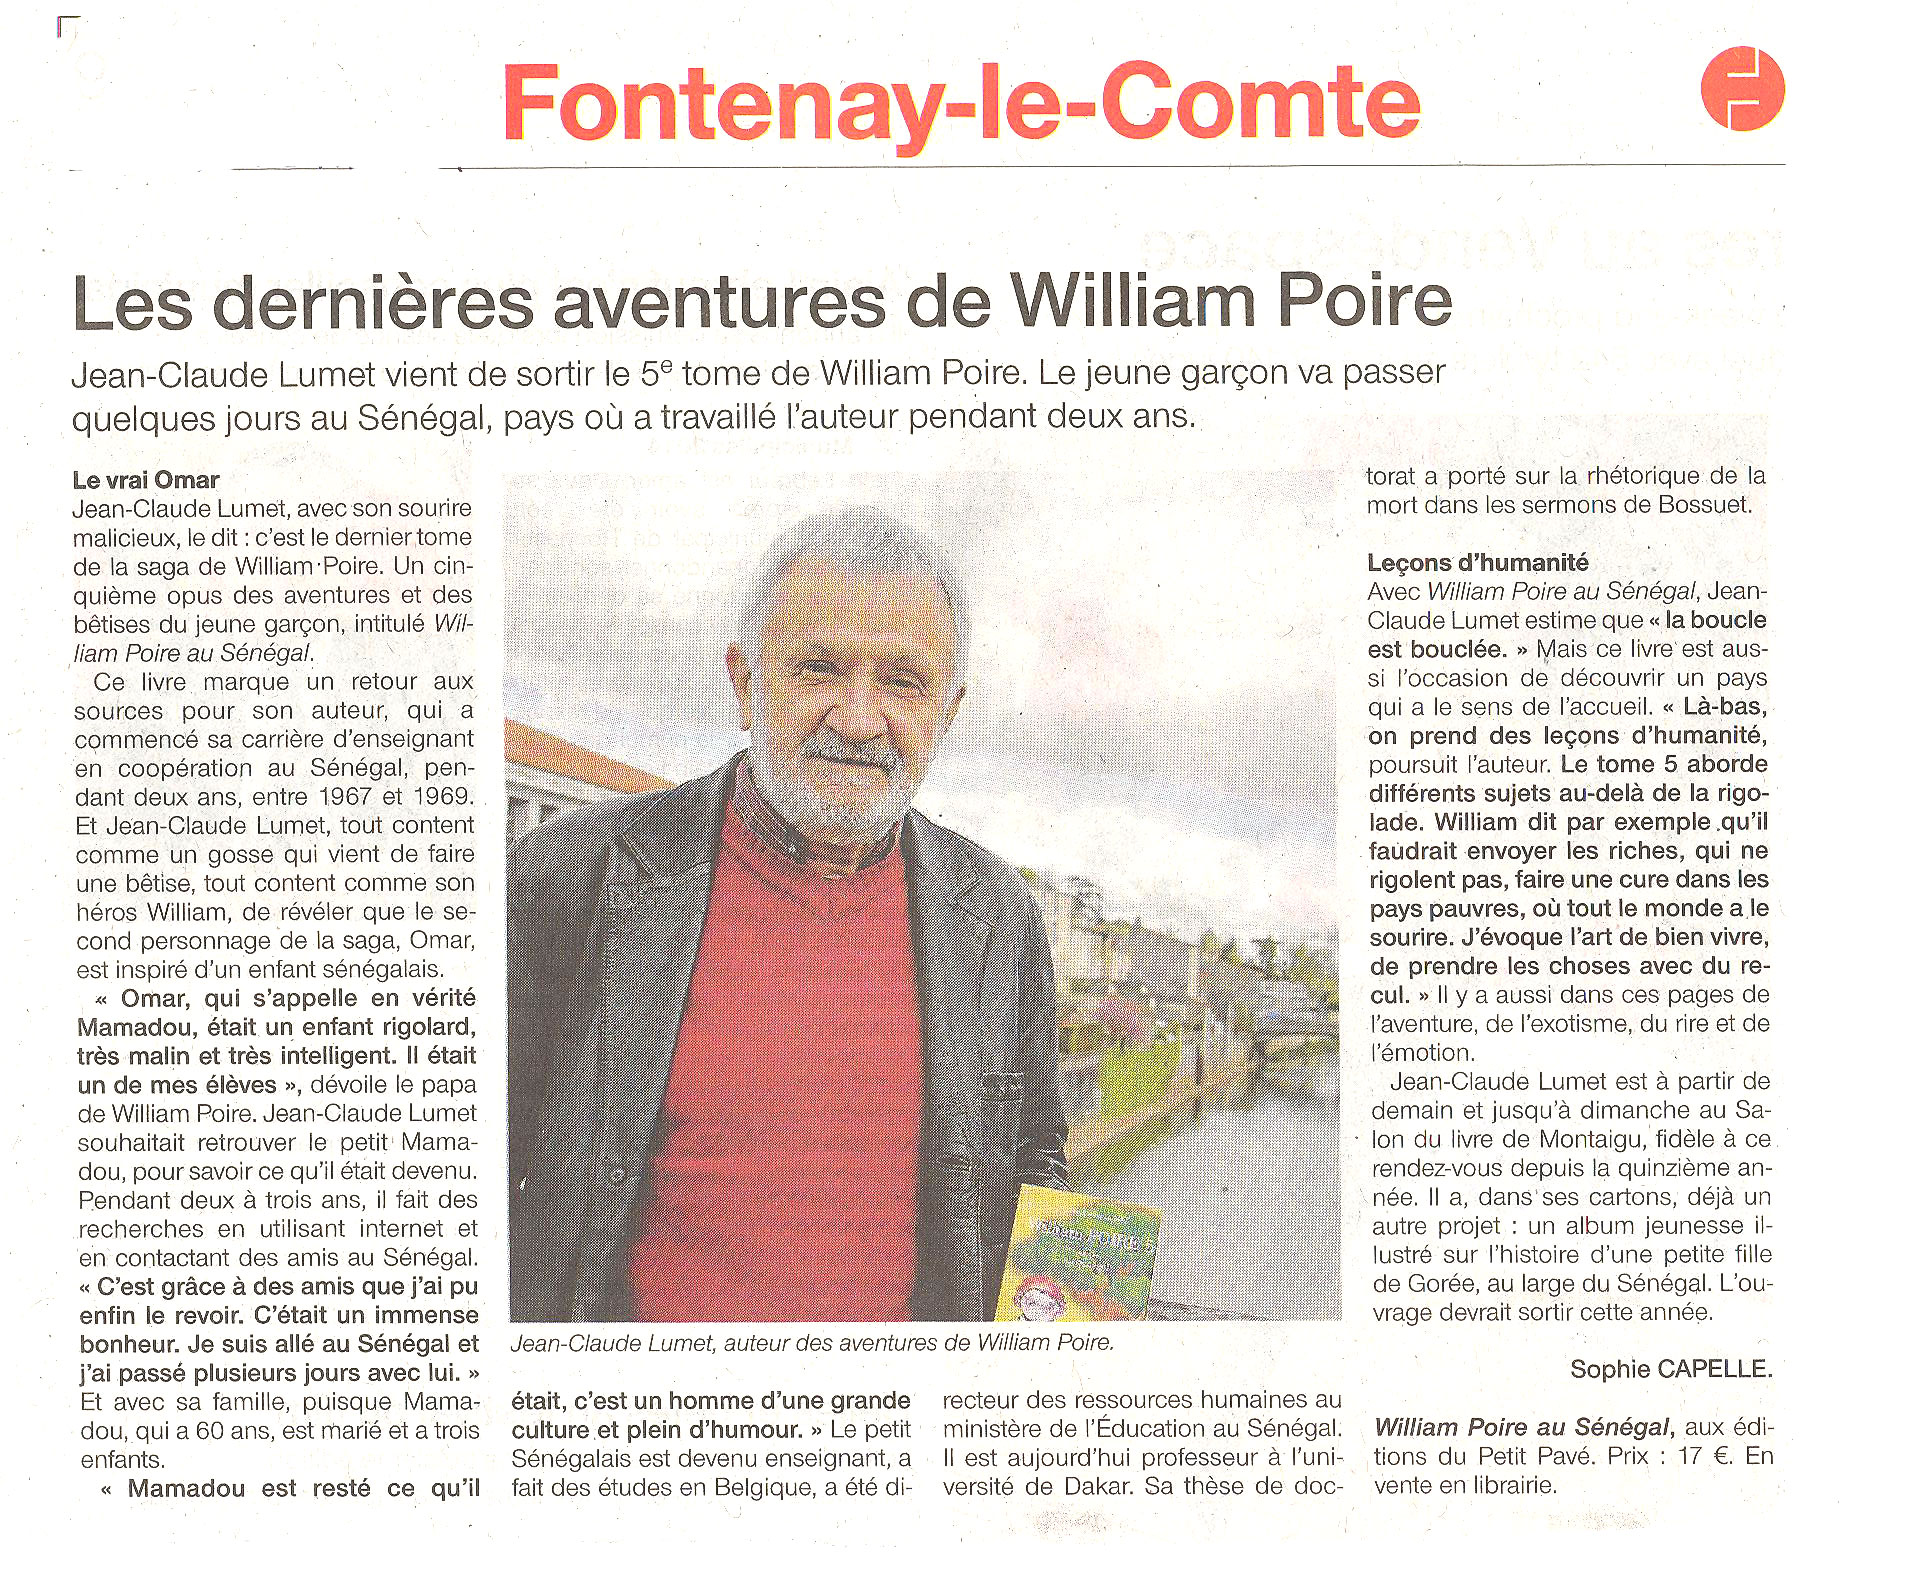 Les derni�res aventures de William Poire - Photo wp-5-ouest-france.jpg